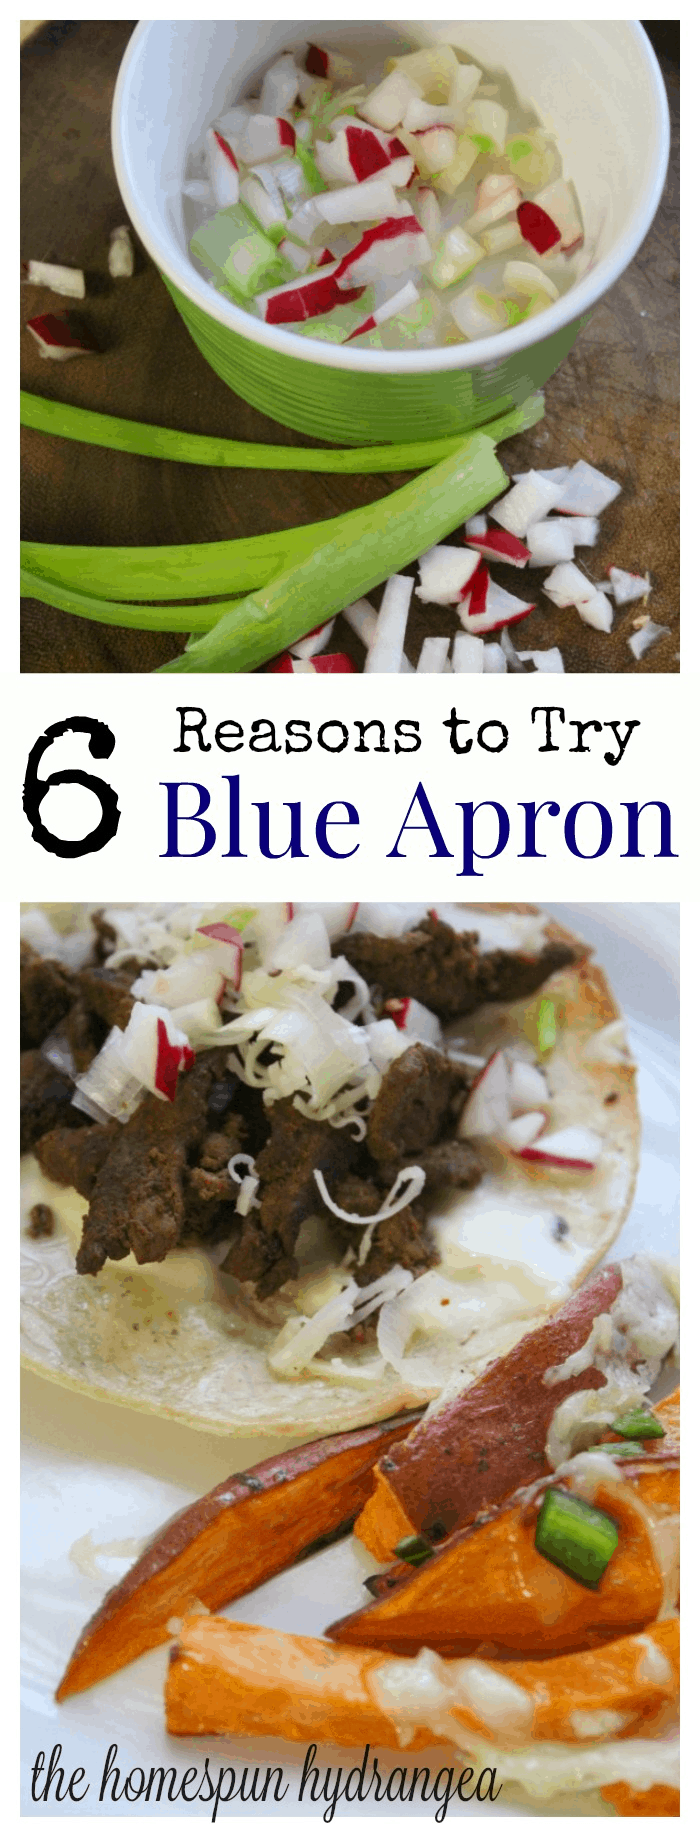 Blue apron try free